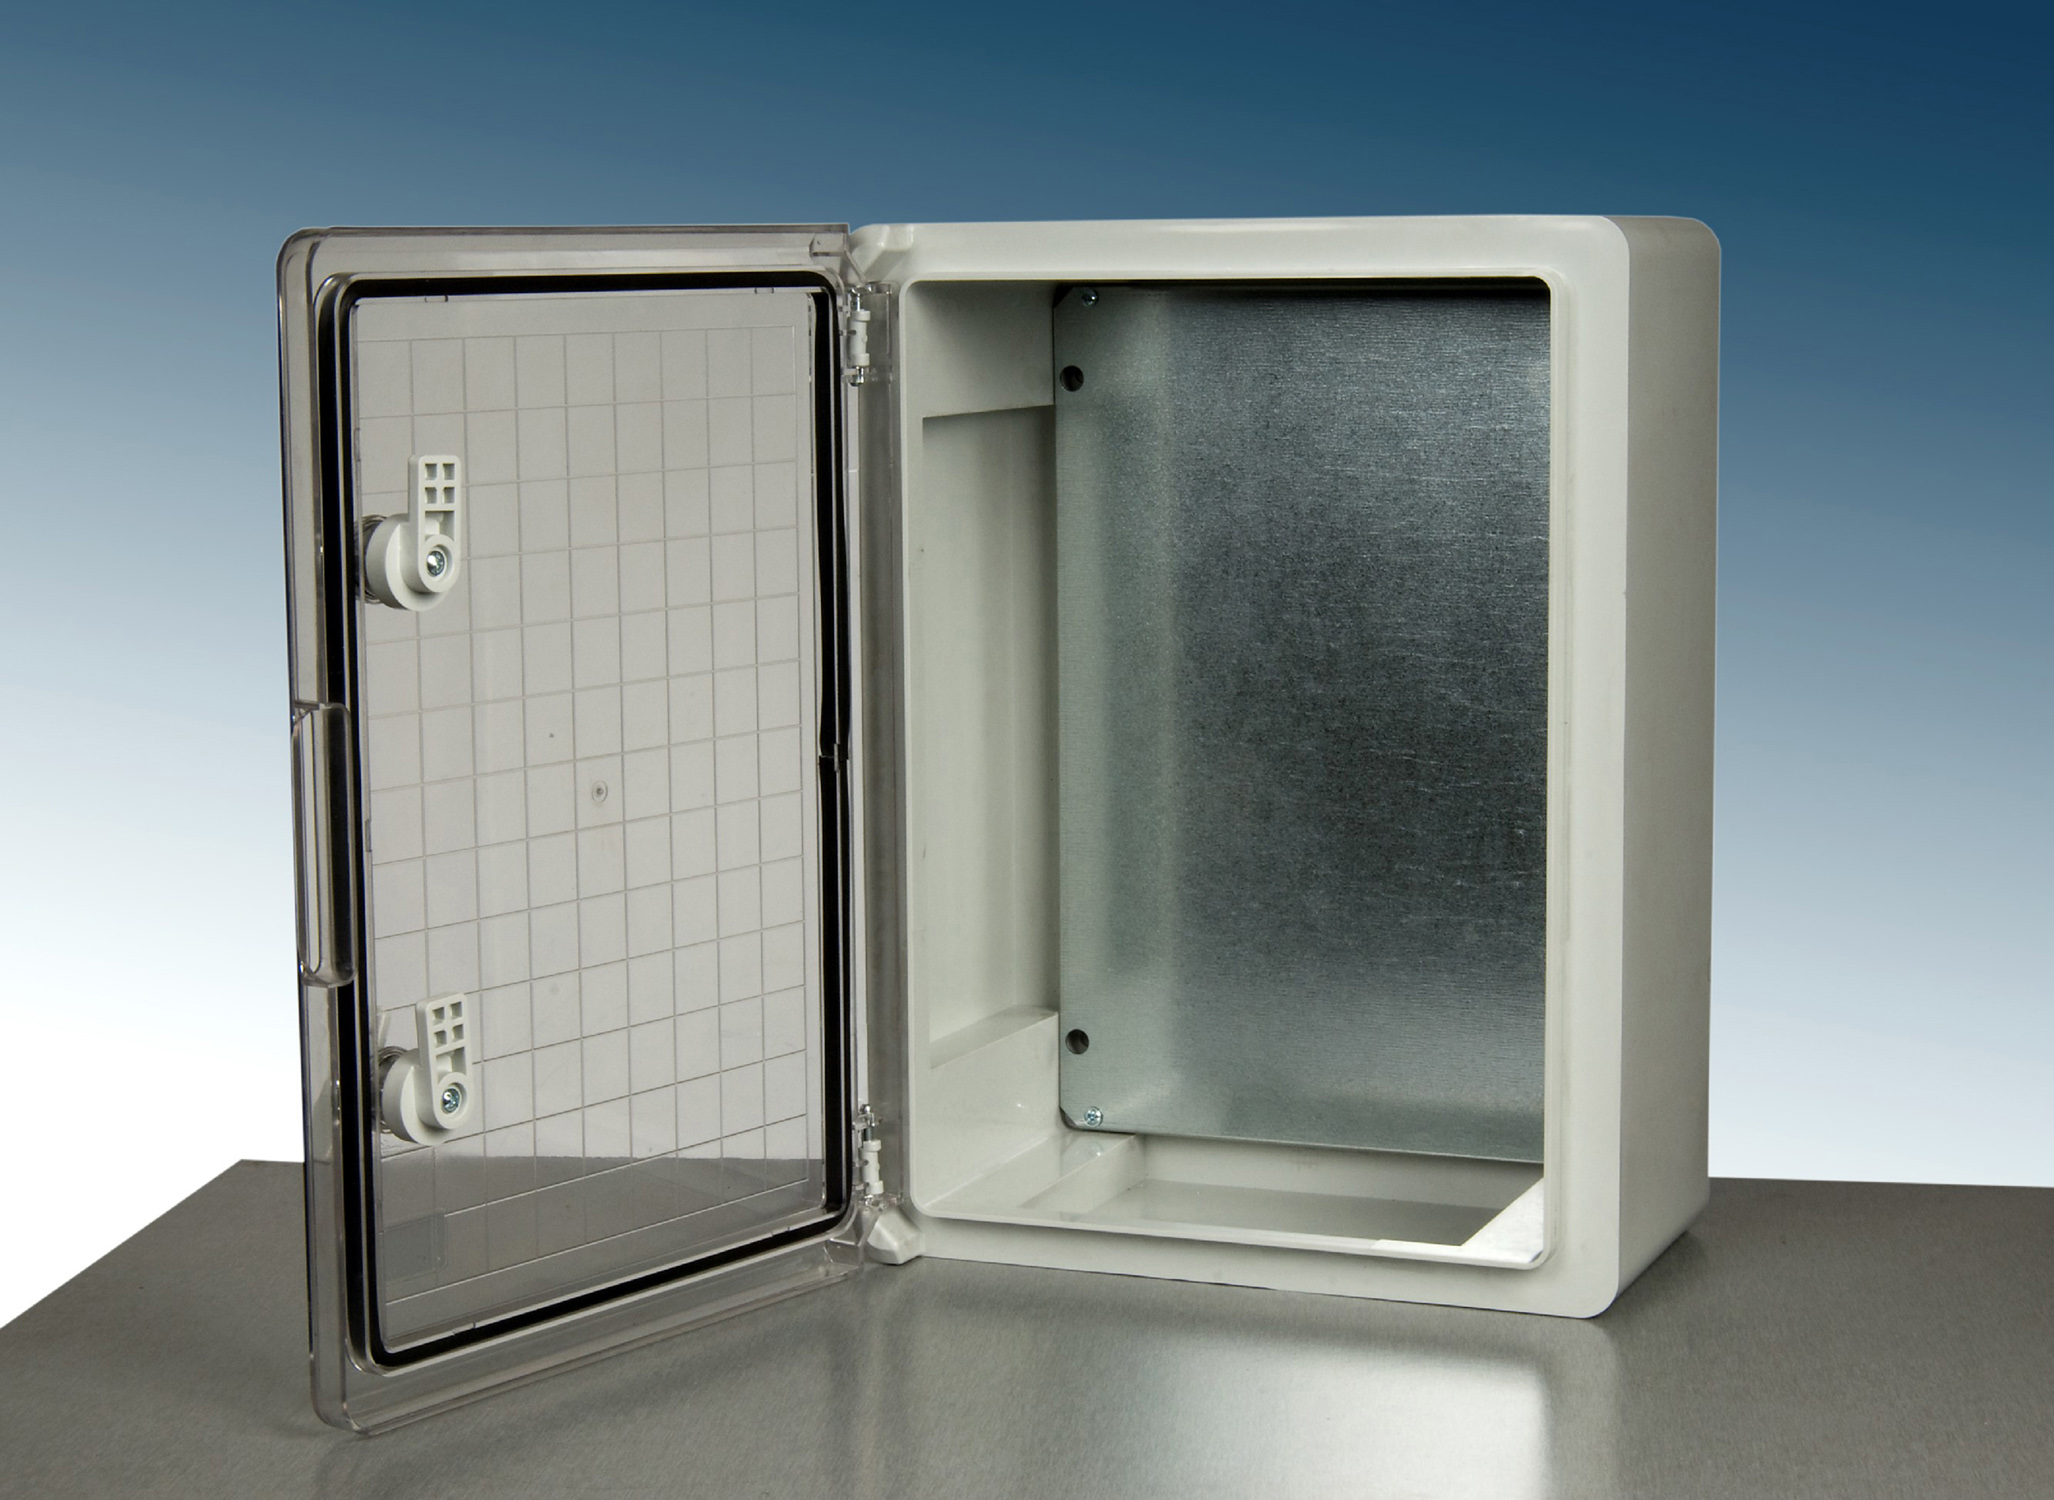 Hylec-APL | New size DED series rugged IP65 door enclosures from